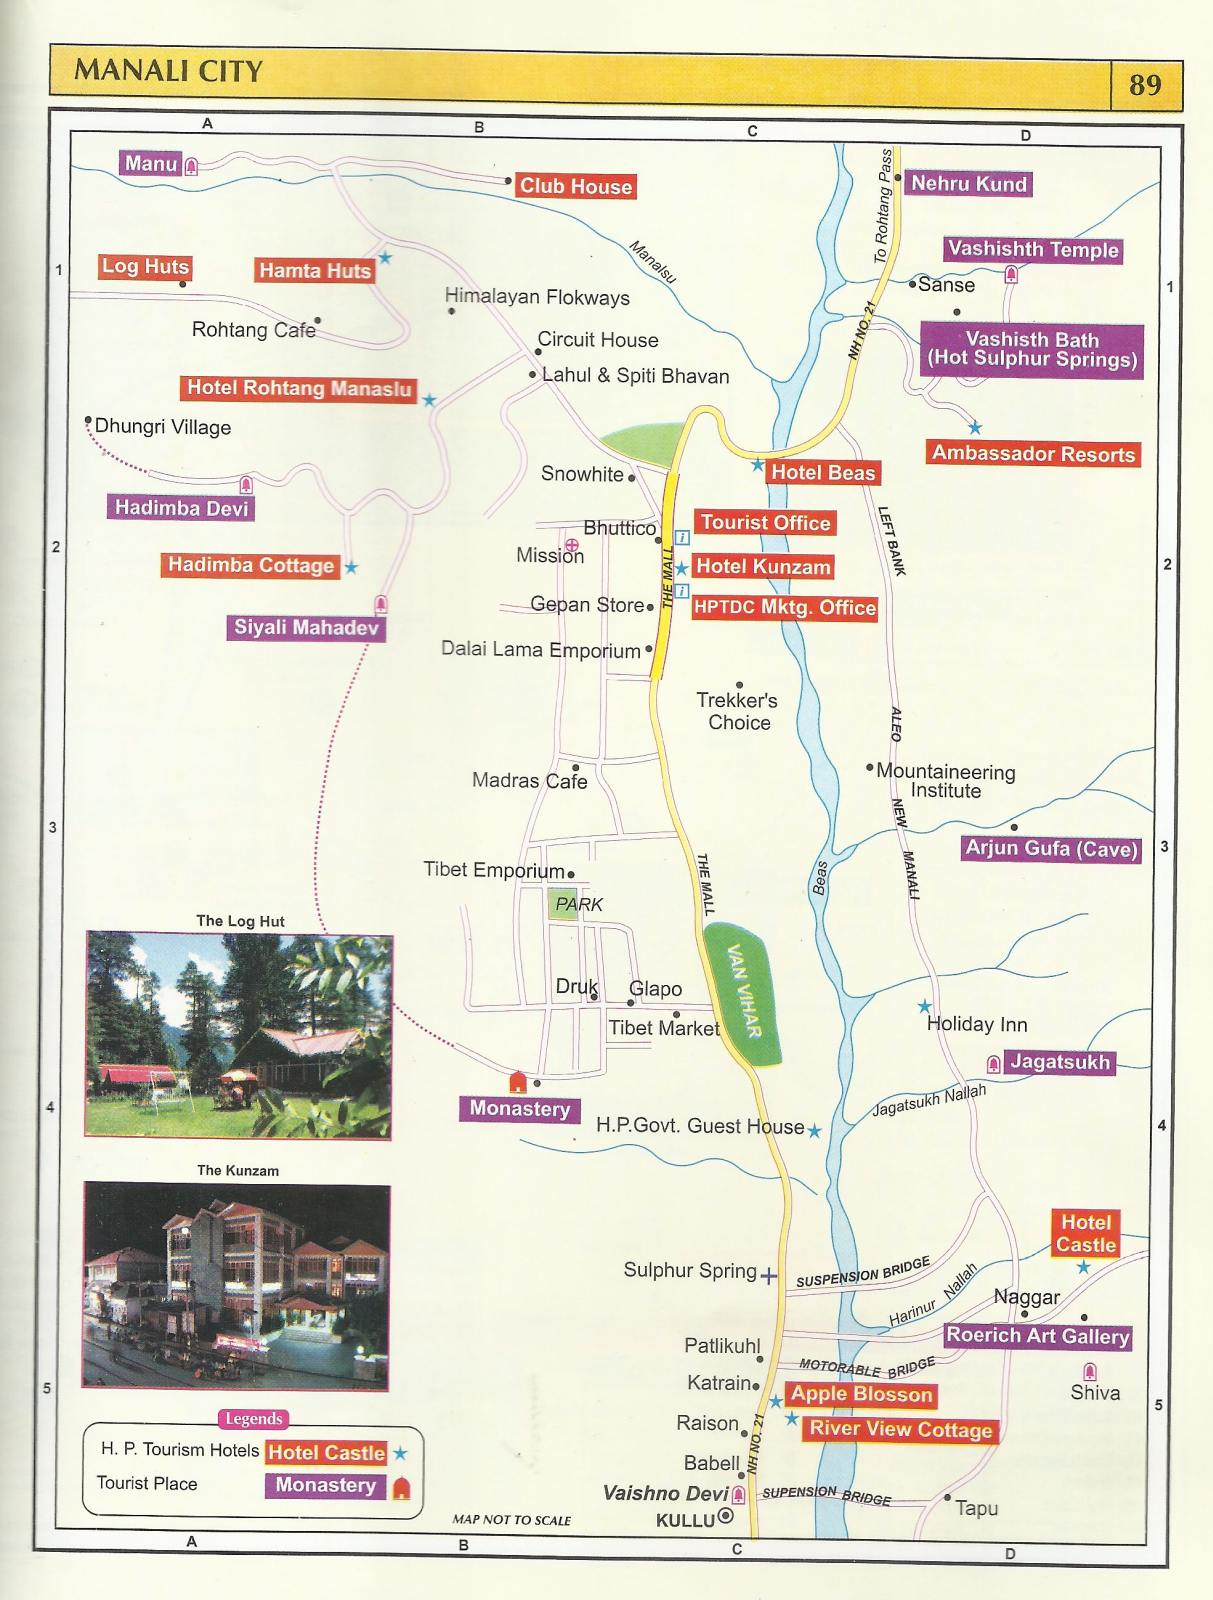 tourist map manali city – himachal pradesh travel guide - tourist map manali city